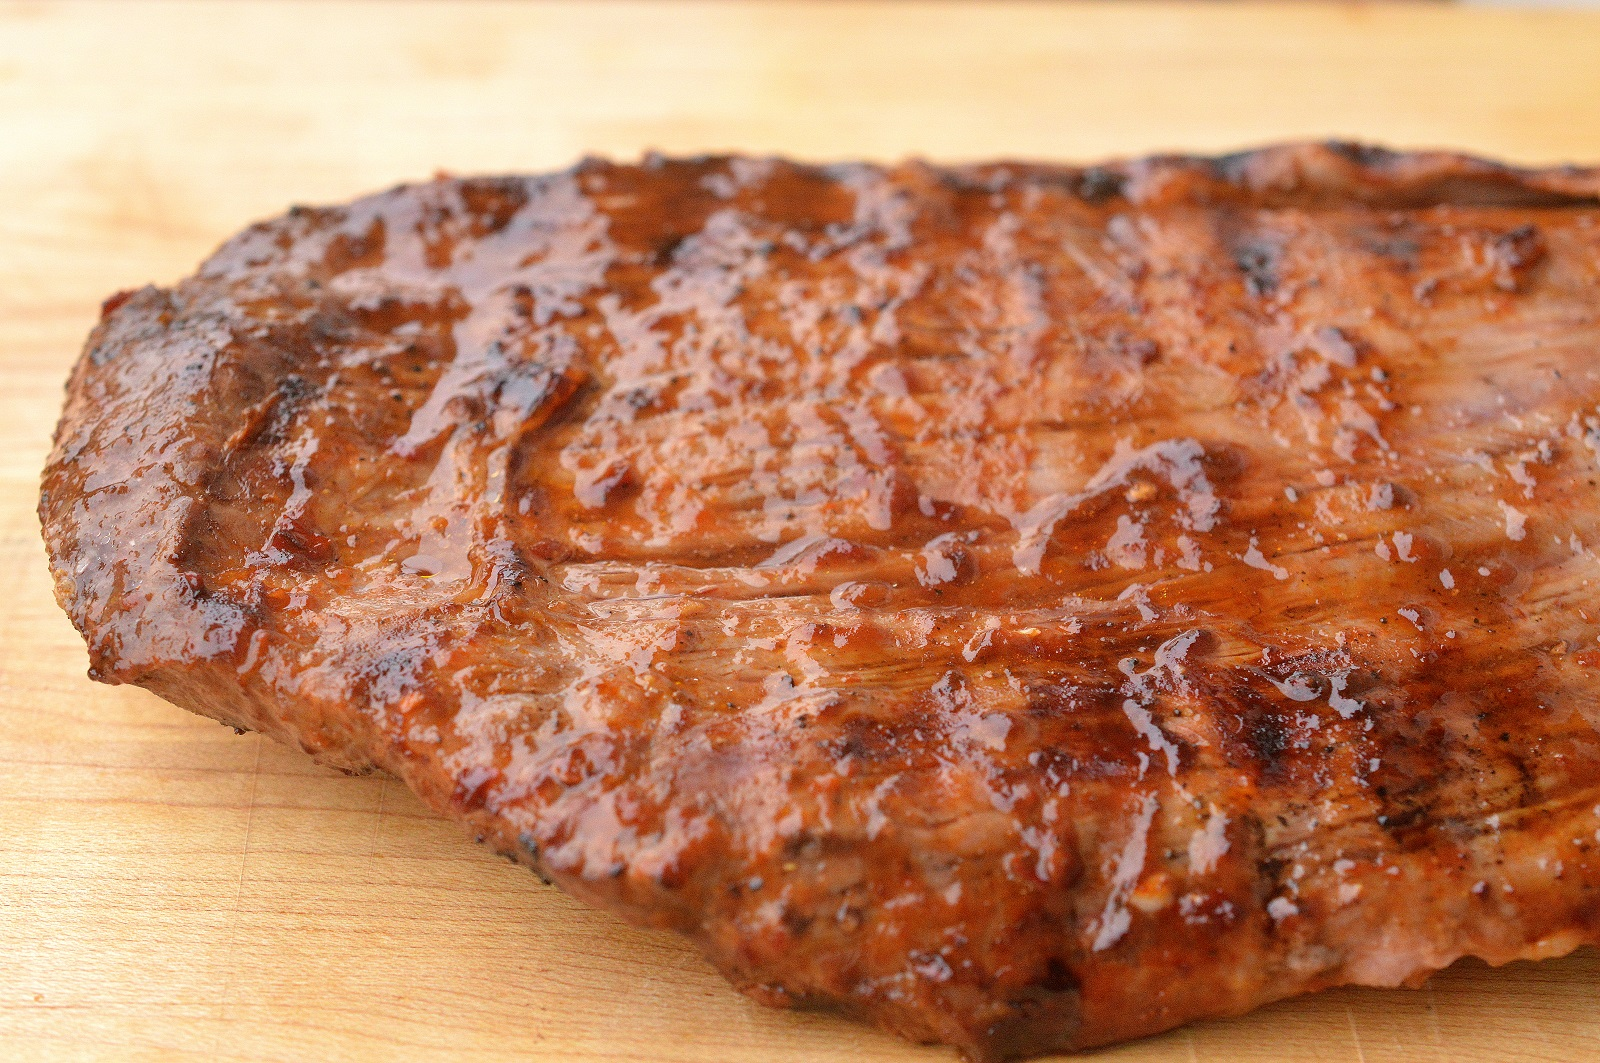 Moyer Beef a trusted brand in the Northeast for 150 years!